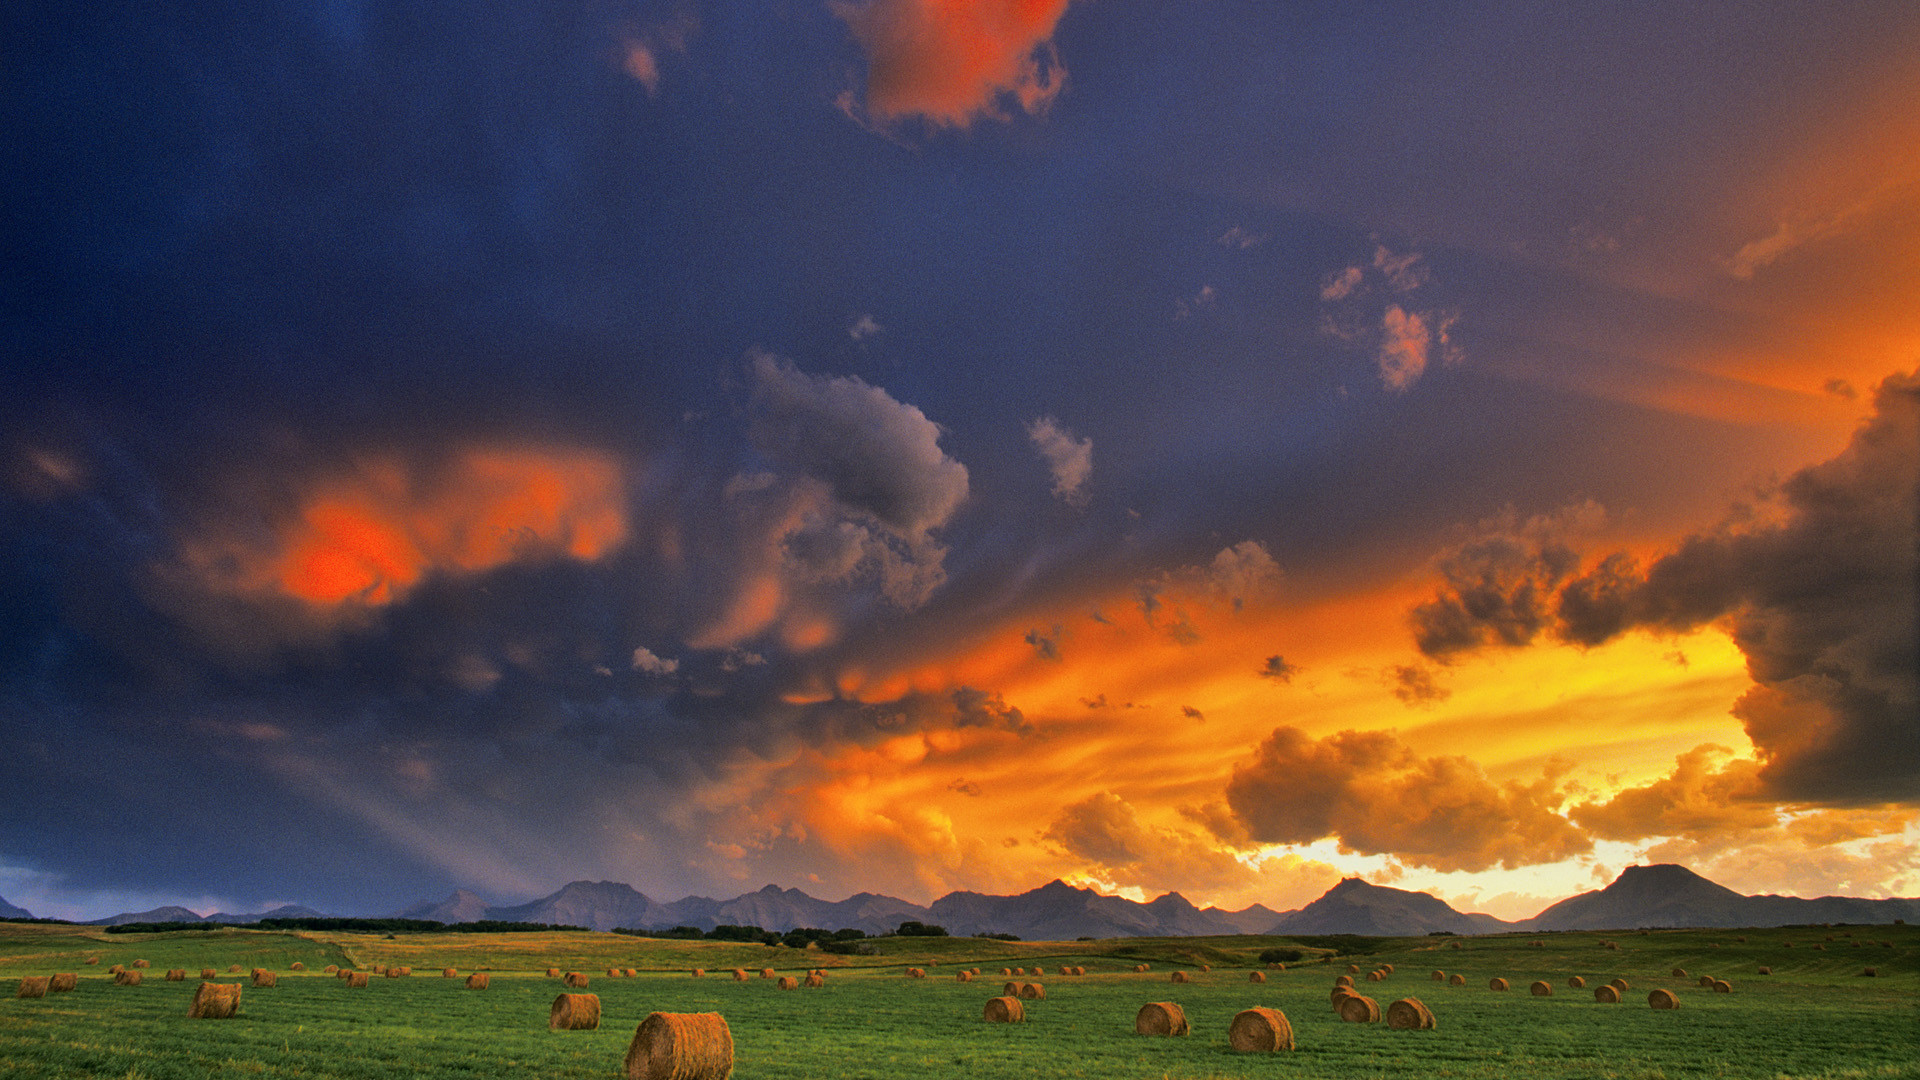 1920x1080 ... Landscape wallpapers (12) ENGLAND Hay bales in a field, Alberta, ...